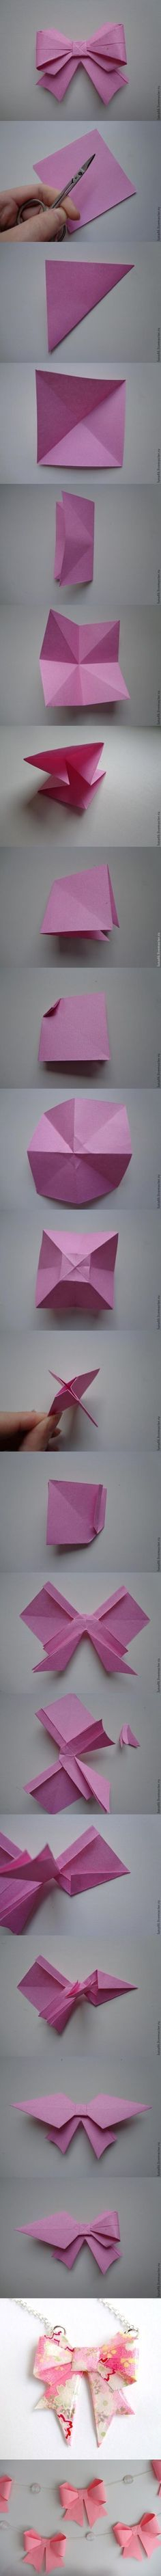 Wie DIY Origami Papier Geschenk Bogen Best Picture For diy beauty storage For Your Taste You are looking for something, and it is going to tell you exactly what you are looking for, and you didn't fin Diy Origami, Origami And Kirigami, Origami Tutorial, Origami Ribbon, Oragami, Origami Hearts, Origami Boxes, Dollar Origami, Origami Ball